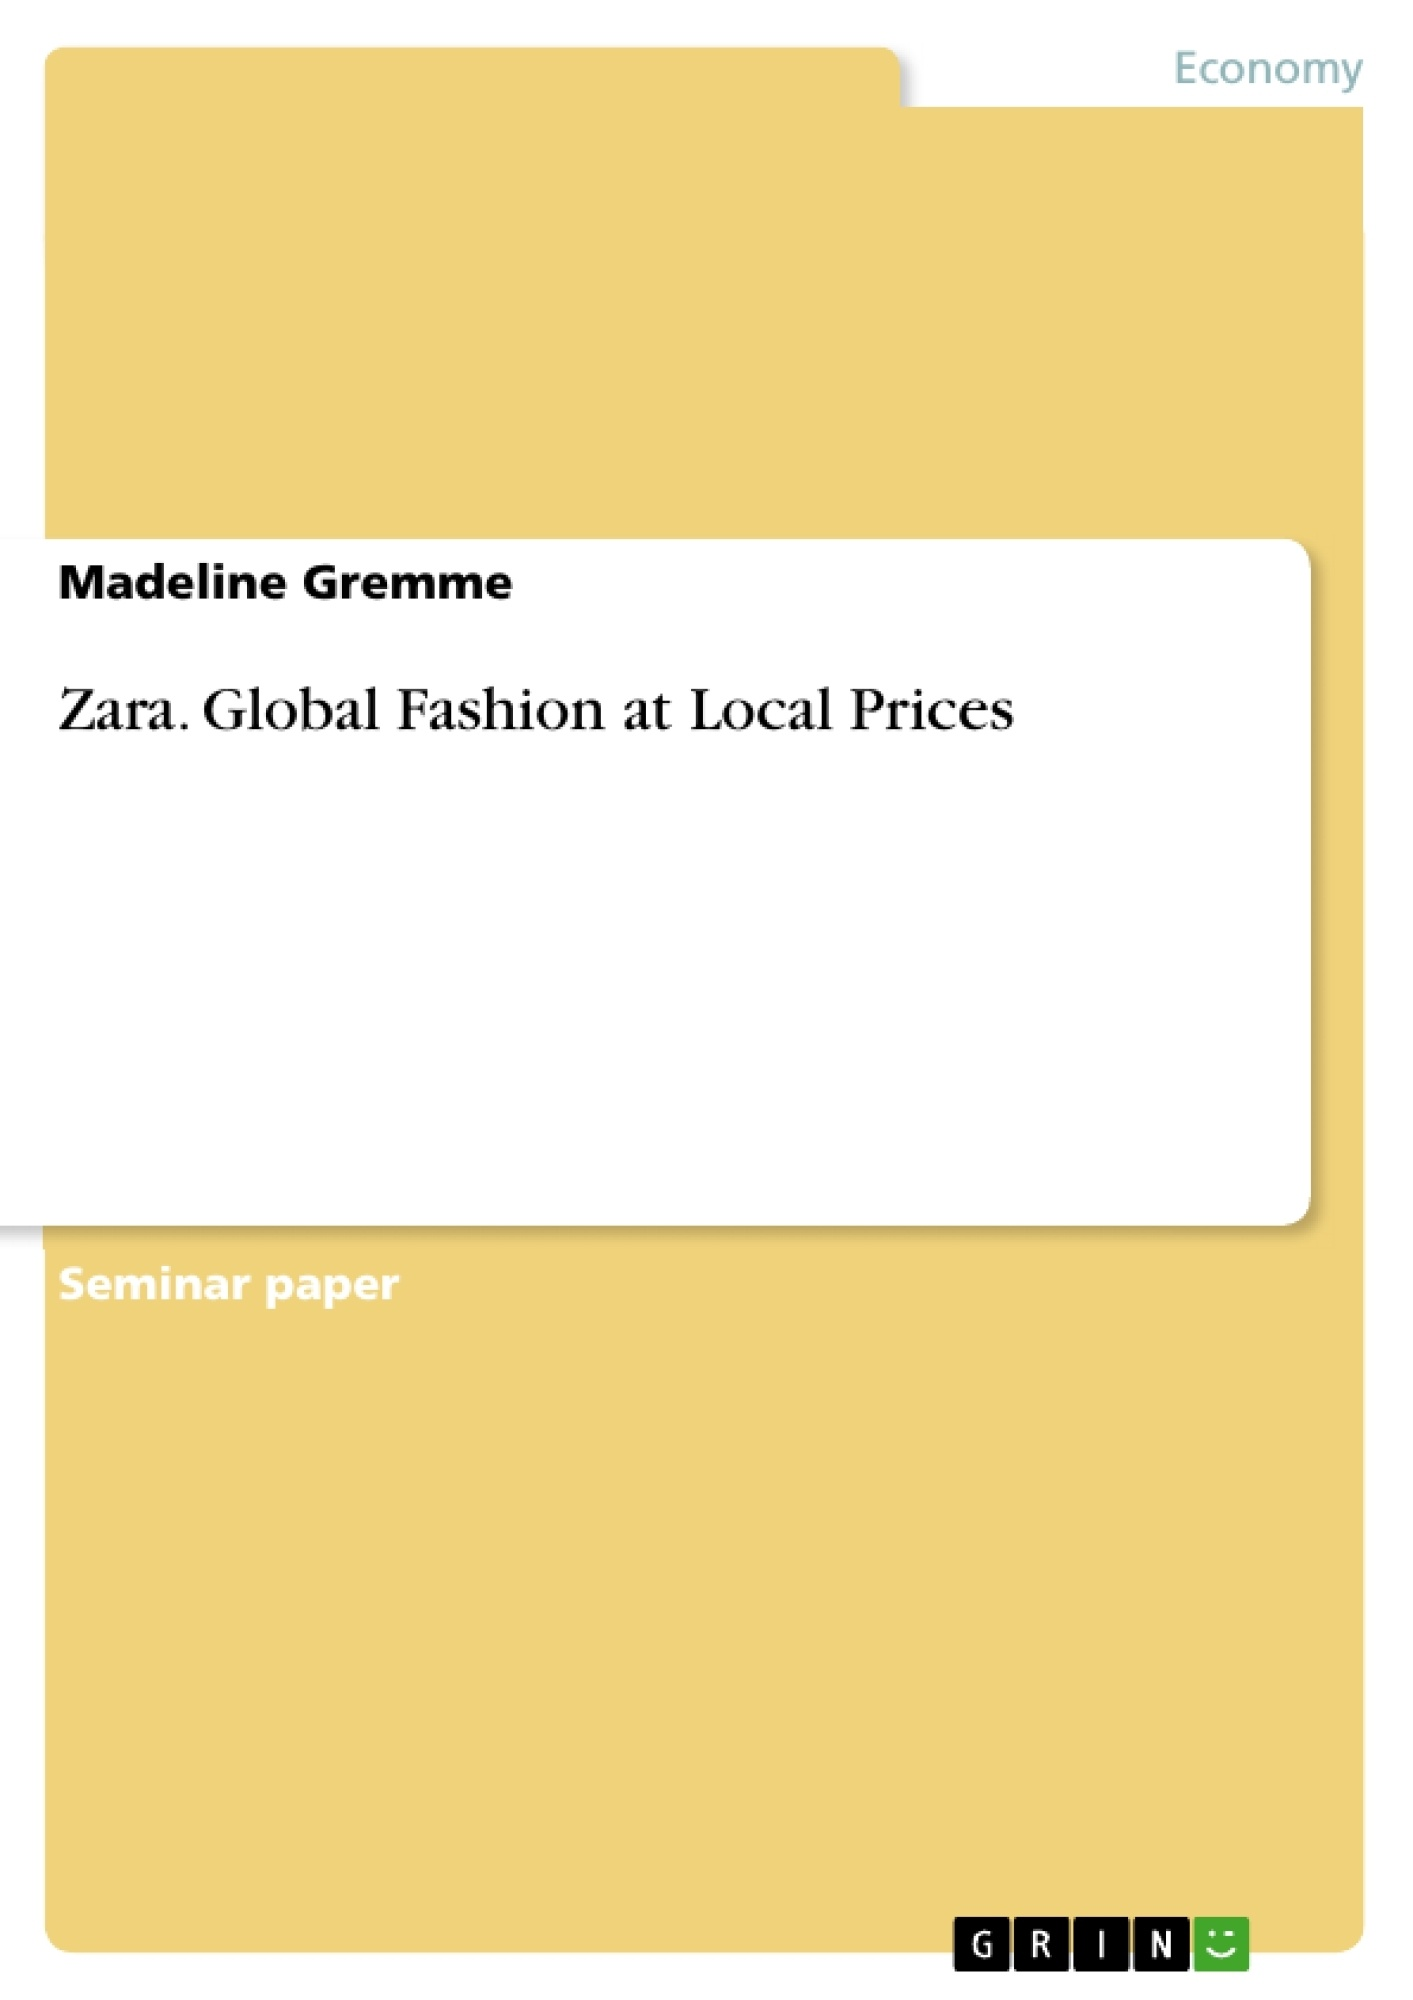 zara global fashion at local prices publish your master s zara global fashion at local prices publish your master s thesis bachelor s thesis essay or term paper